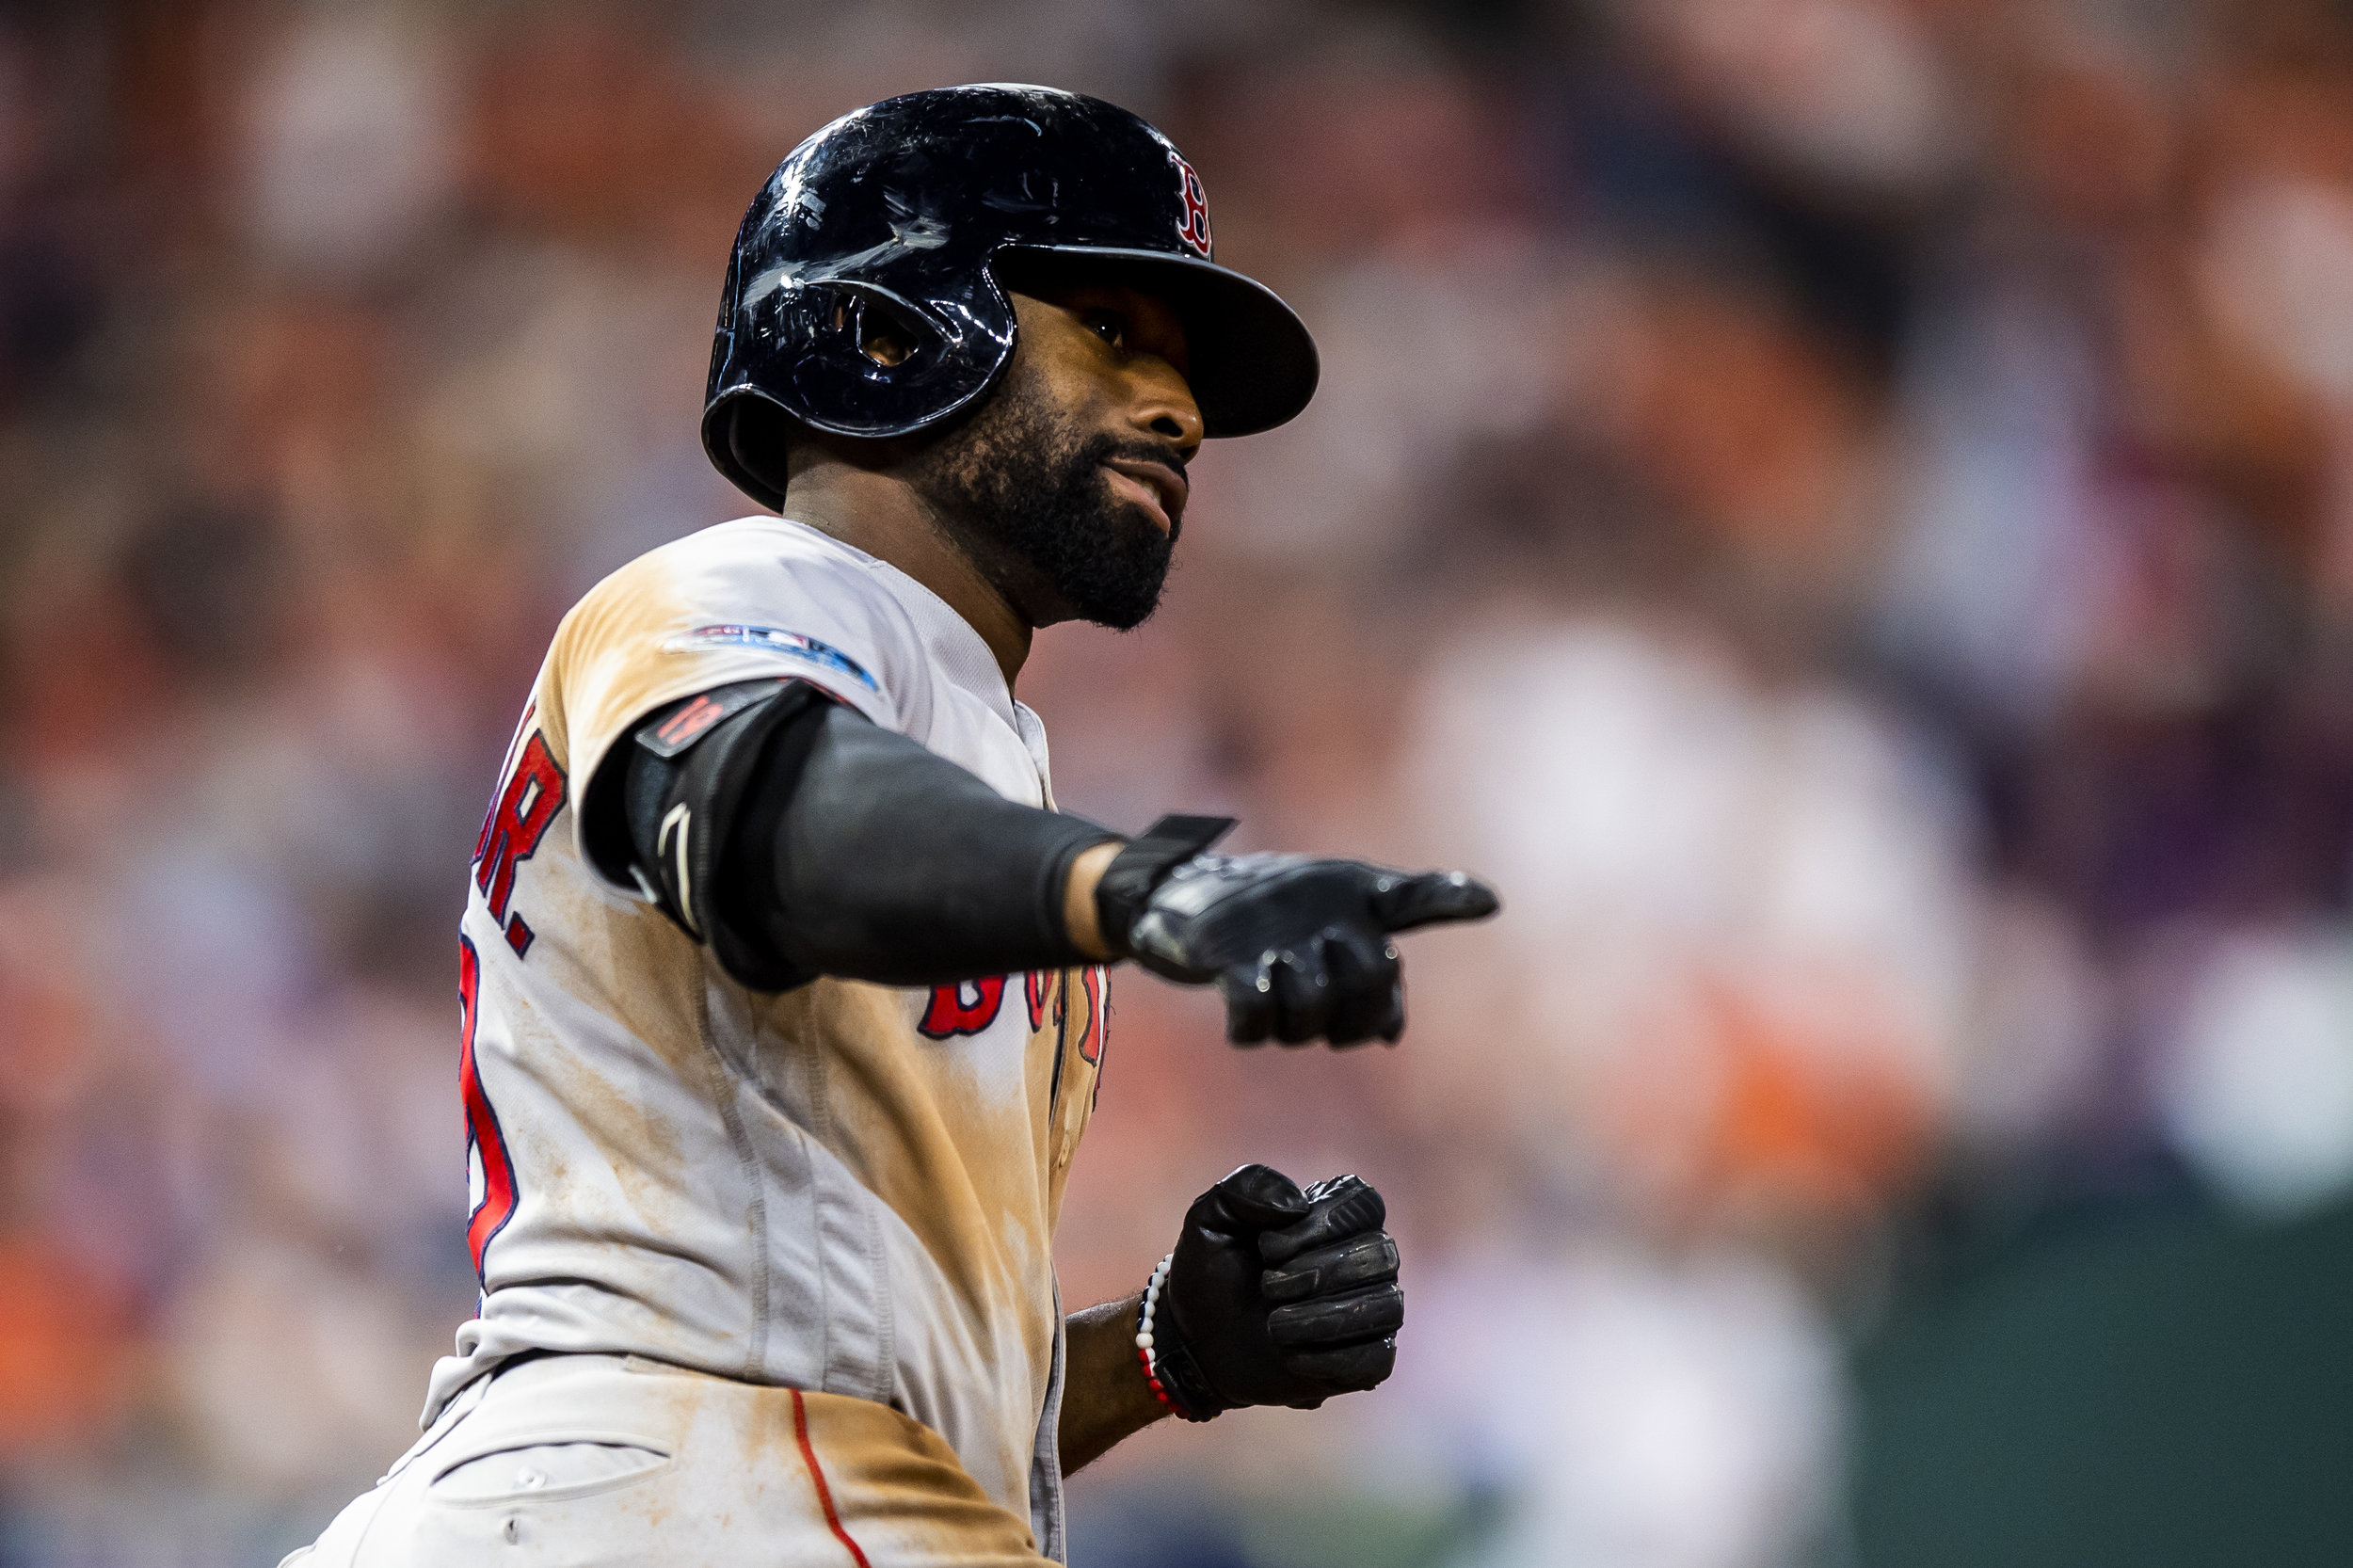 October 17, 2018, Houston, TX: Boston Red Sox outfielder Jackie Bradley Jr. points to the crowd after hitting a home run as the Boston Red Sox face the Houston Astros in Game 4 of the ALCS at Minute Maid Park in Houston, Texas on Wednesday, October 17, 2018. (Photo by Matthew Thomas/Boston Red Sox)